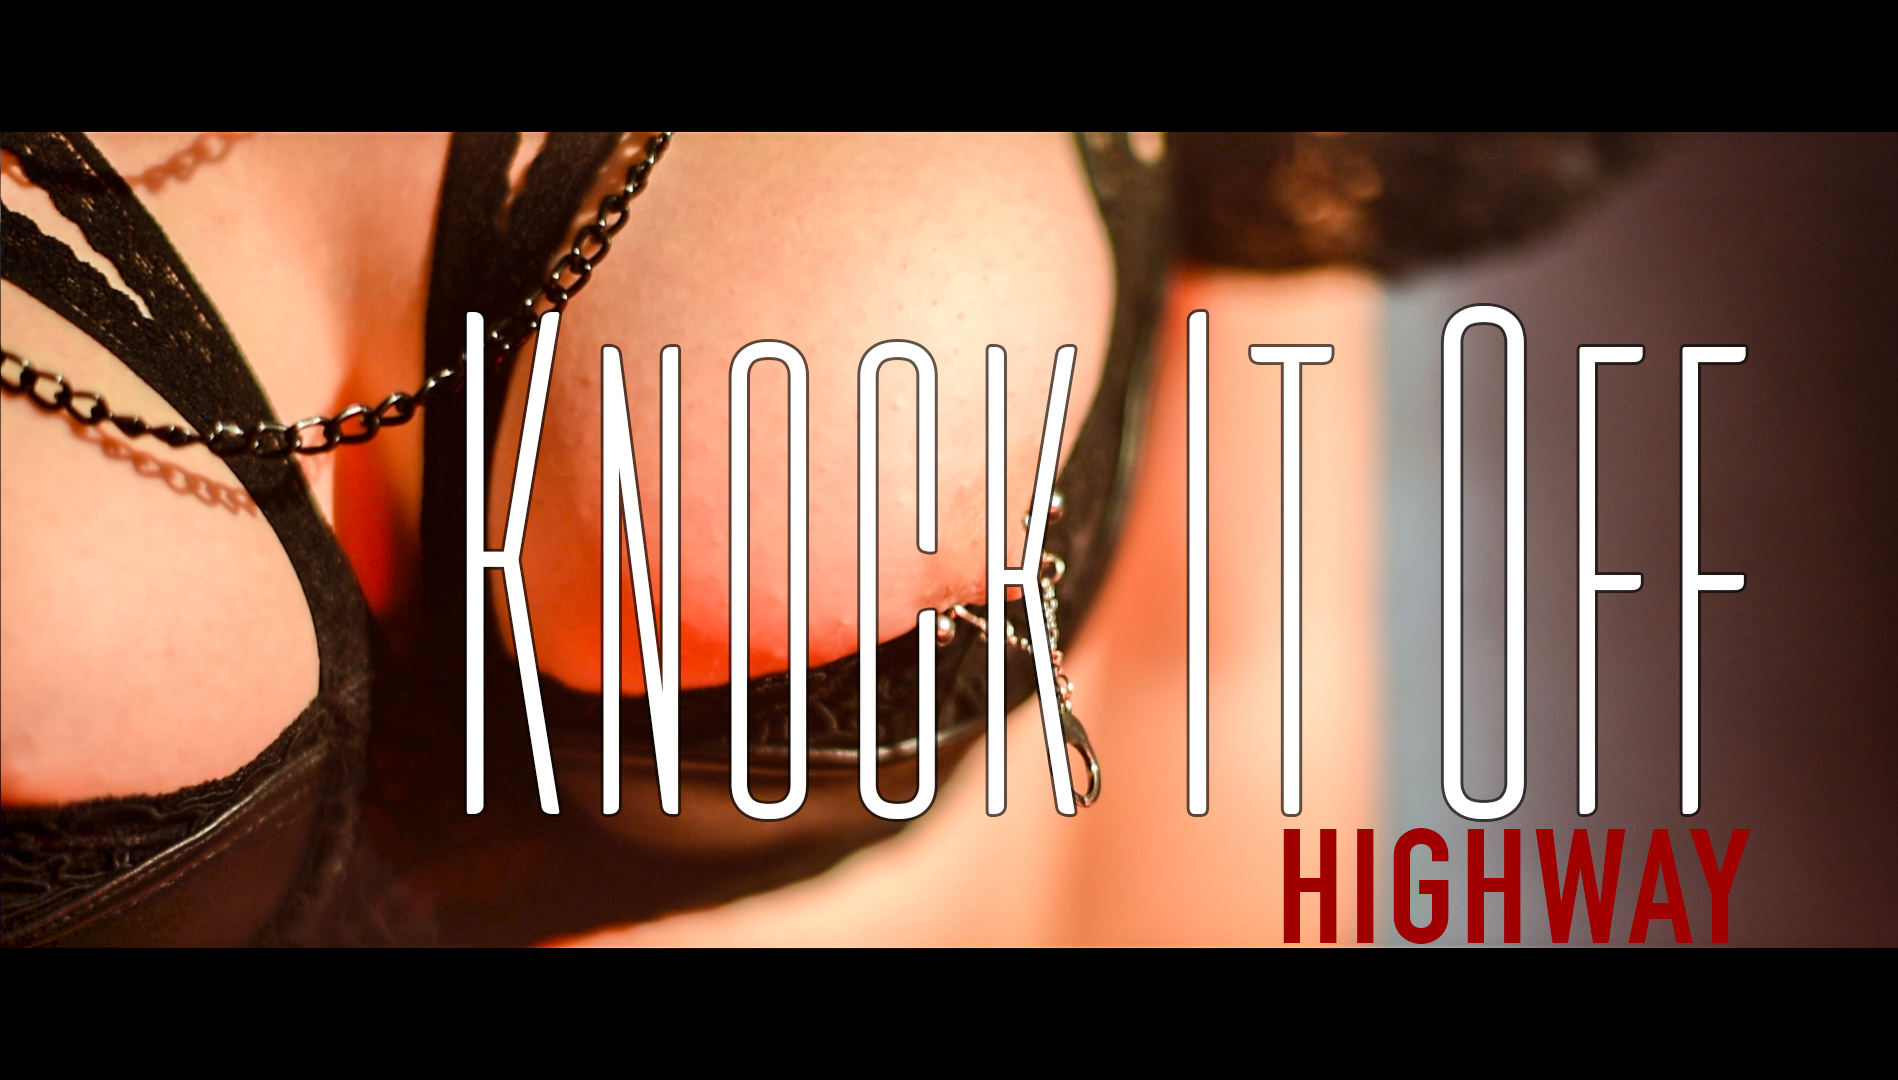 HIGHWAY - KNOCK IT OFF